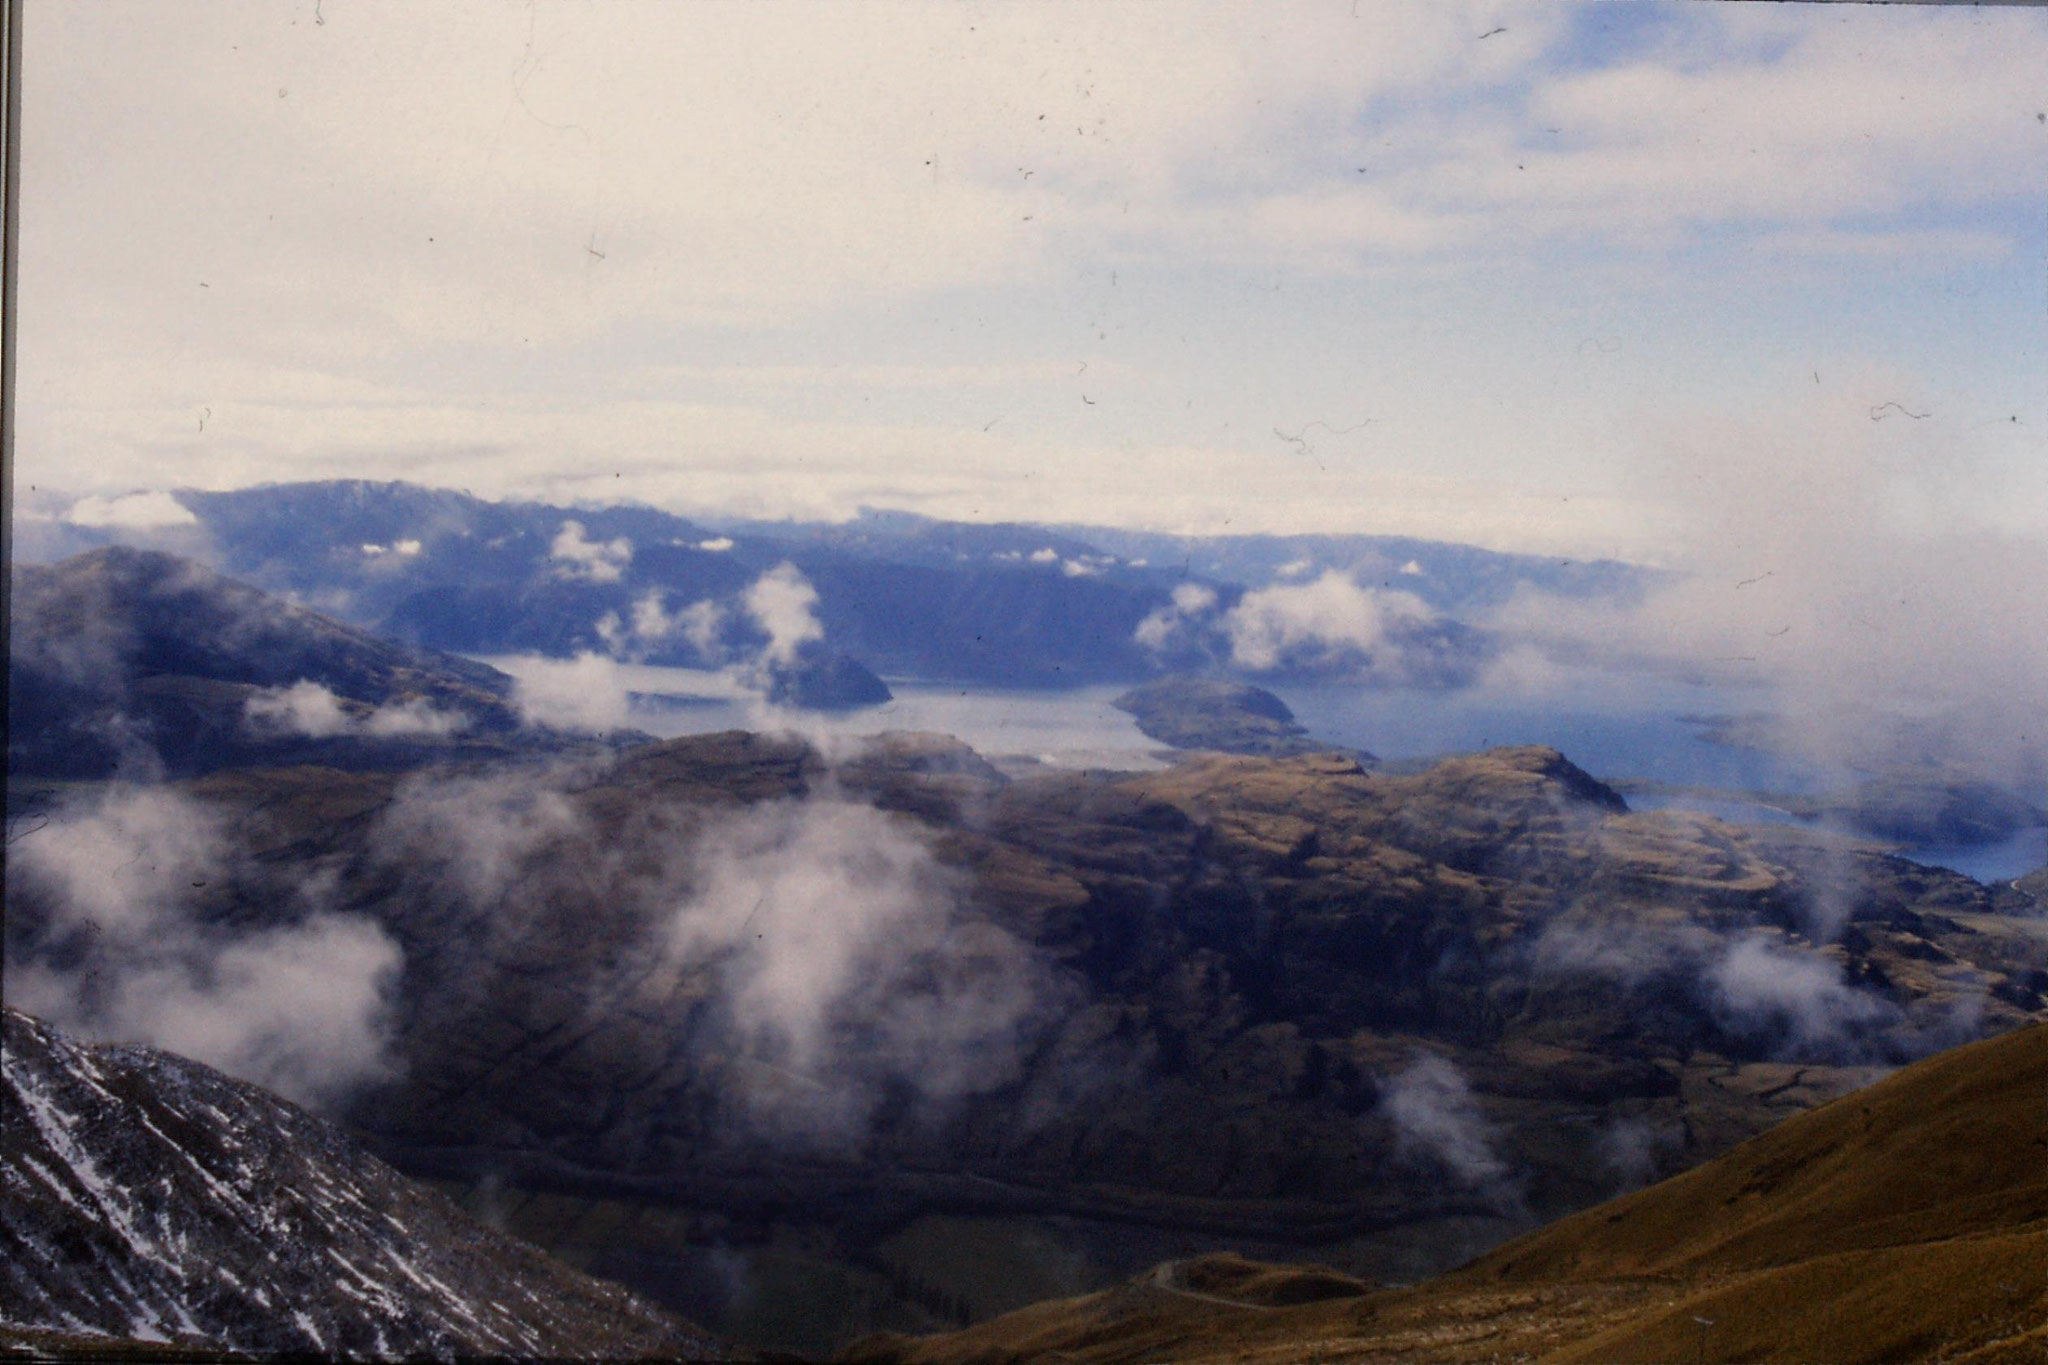 20/8/1990: 16: Wanaka Lake from Treble Lane car park